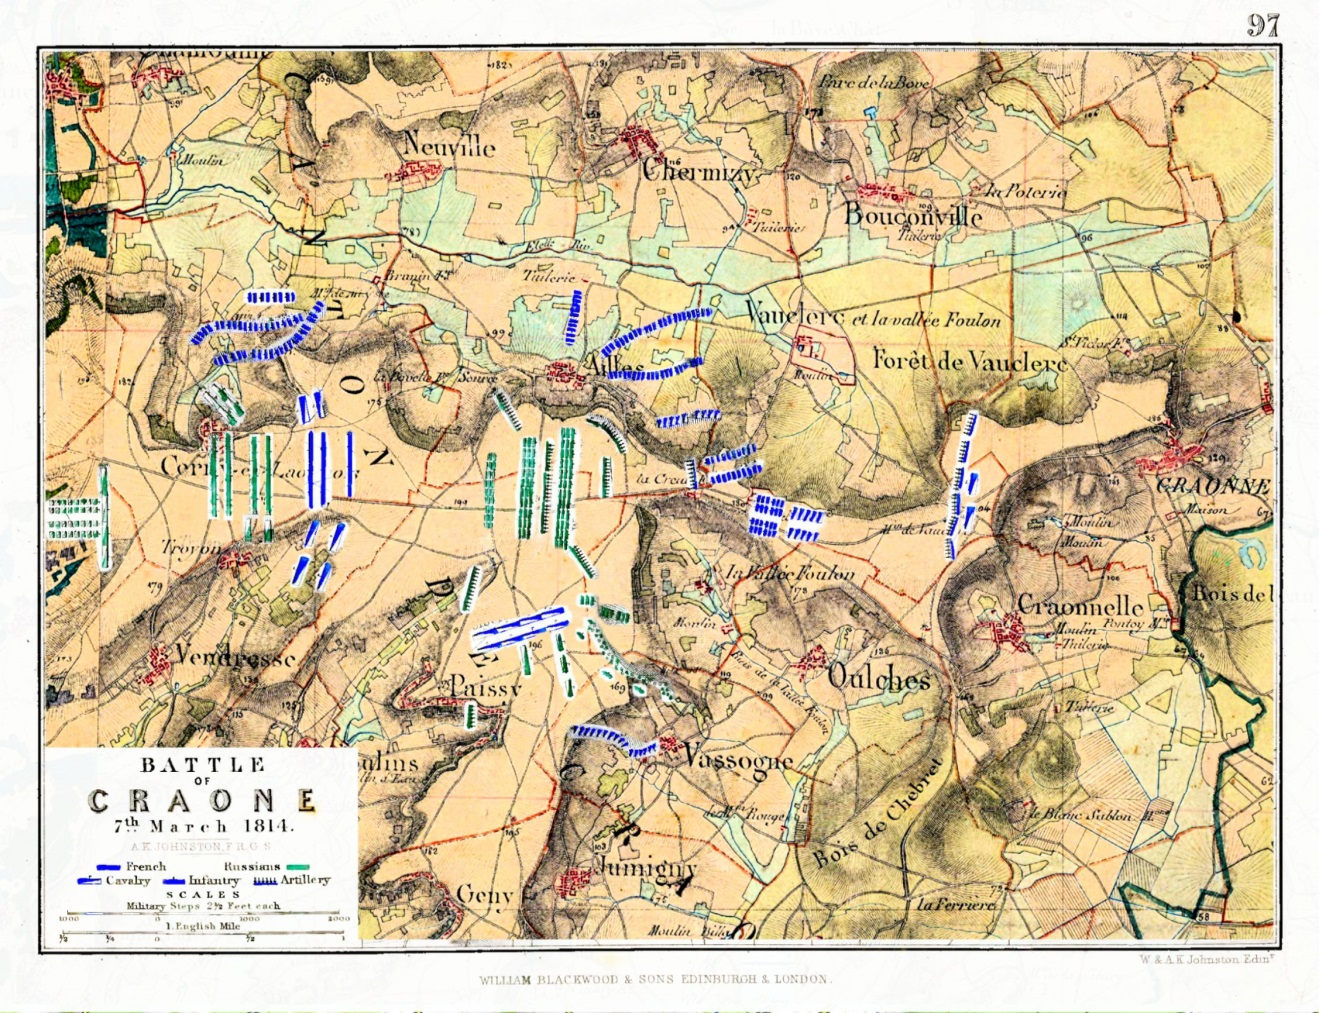 Troop positions overlayed on contemporary map (Staff Map 1820-166). http://www.geoportail.gouv.fr/